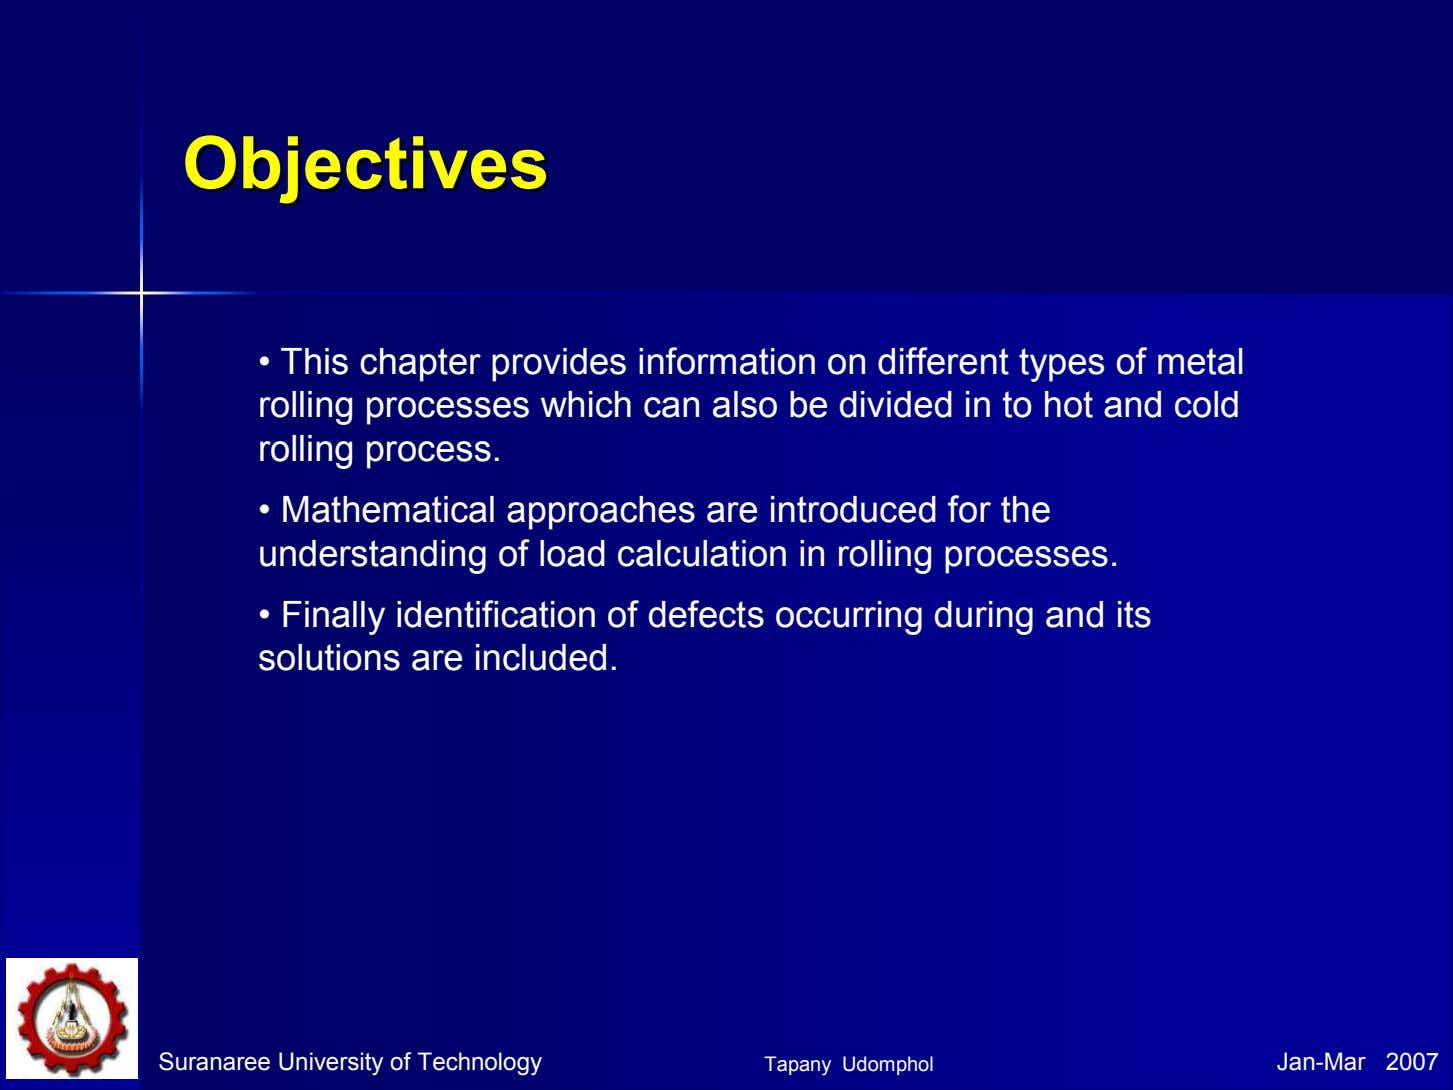 ObjectivesObjectives • This chapter provides information on different types of metal rolling processes which can